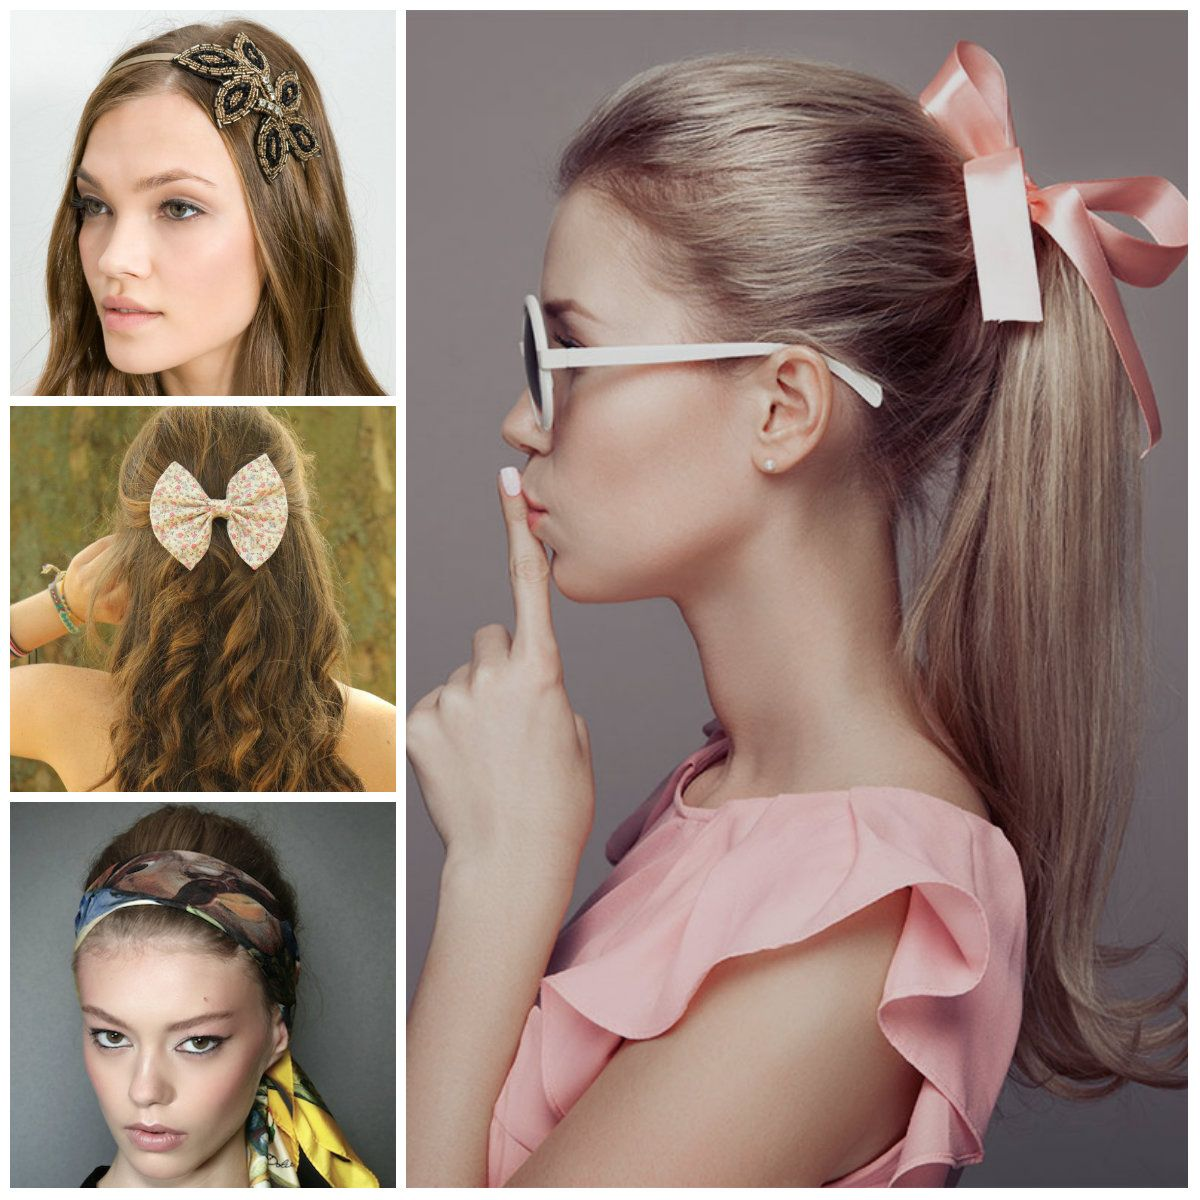 hairstyles archives - hair and beauty